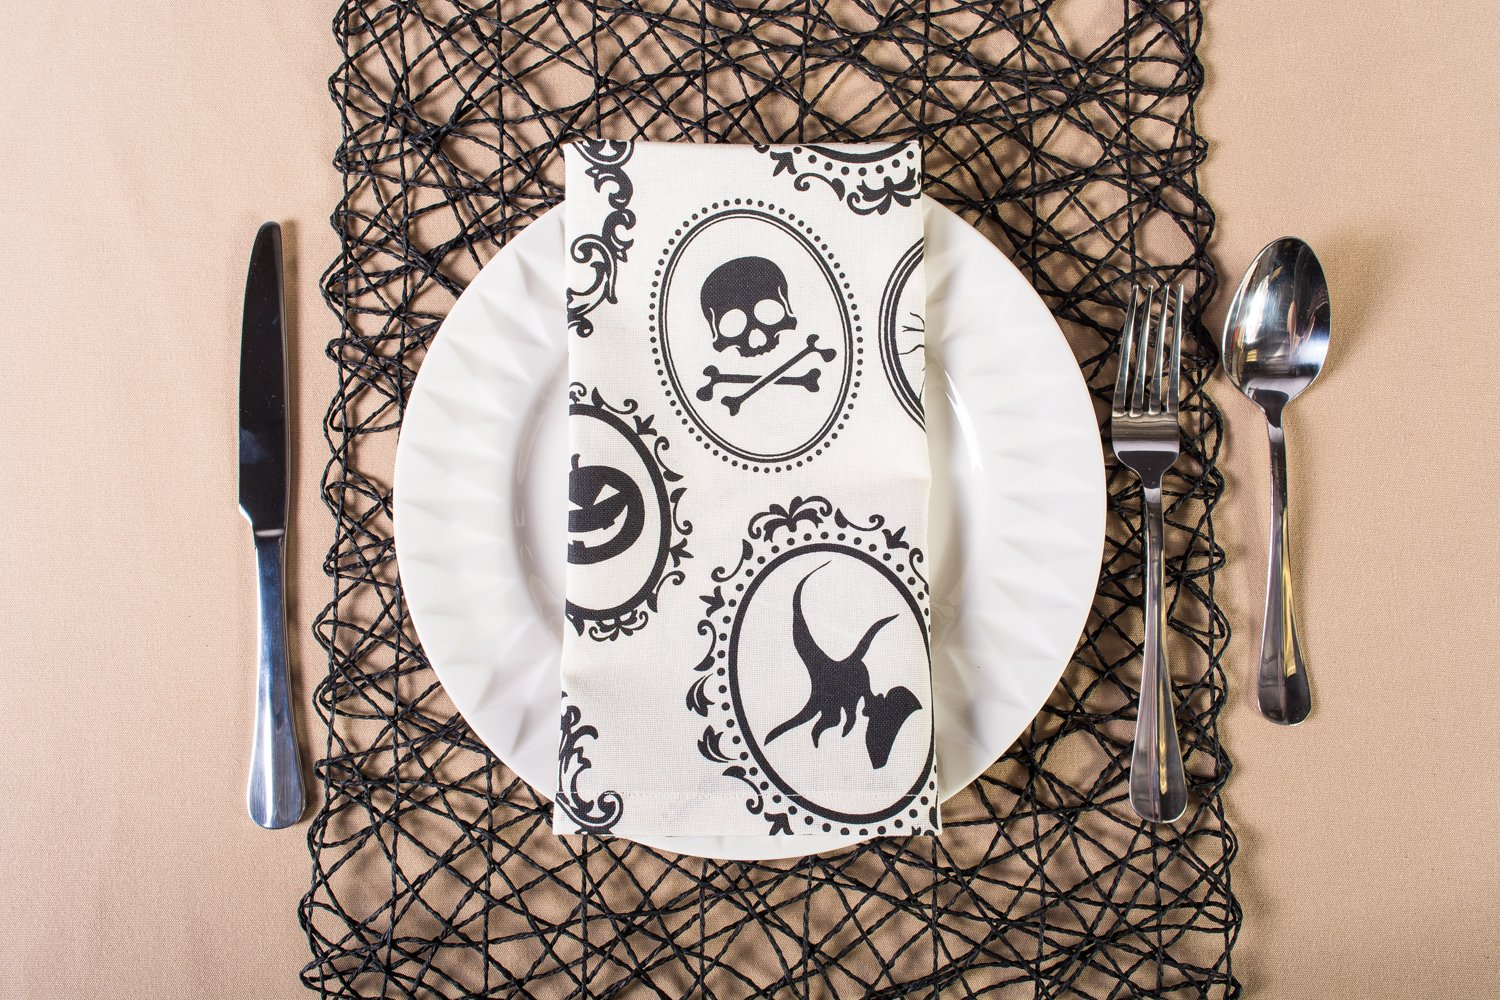 DII Oversized 20x20'' Cotton Napkin, Black & White Halloween Portrait - Perfect for Halloween, Dinner Parties and Scary Movie Nights by DII (Image #10)